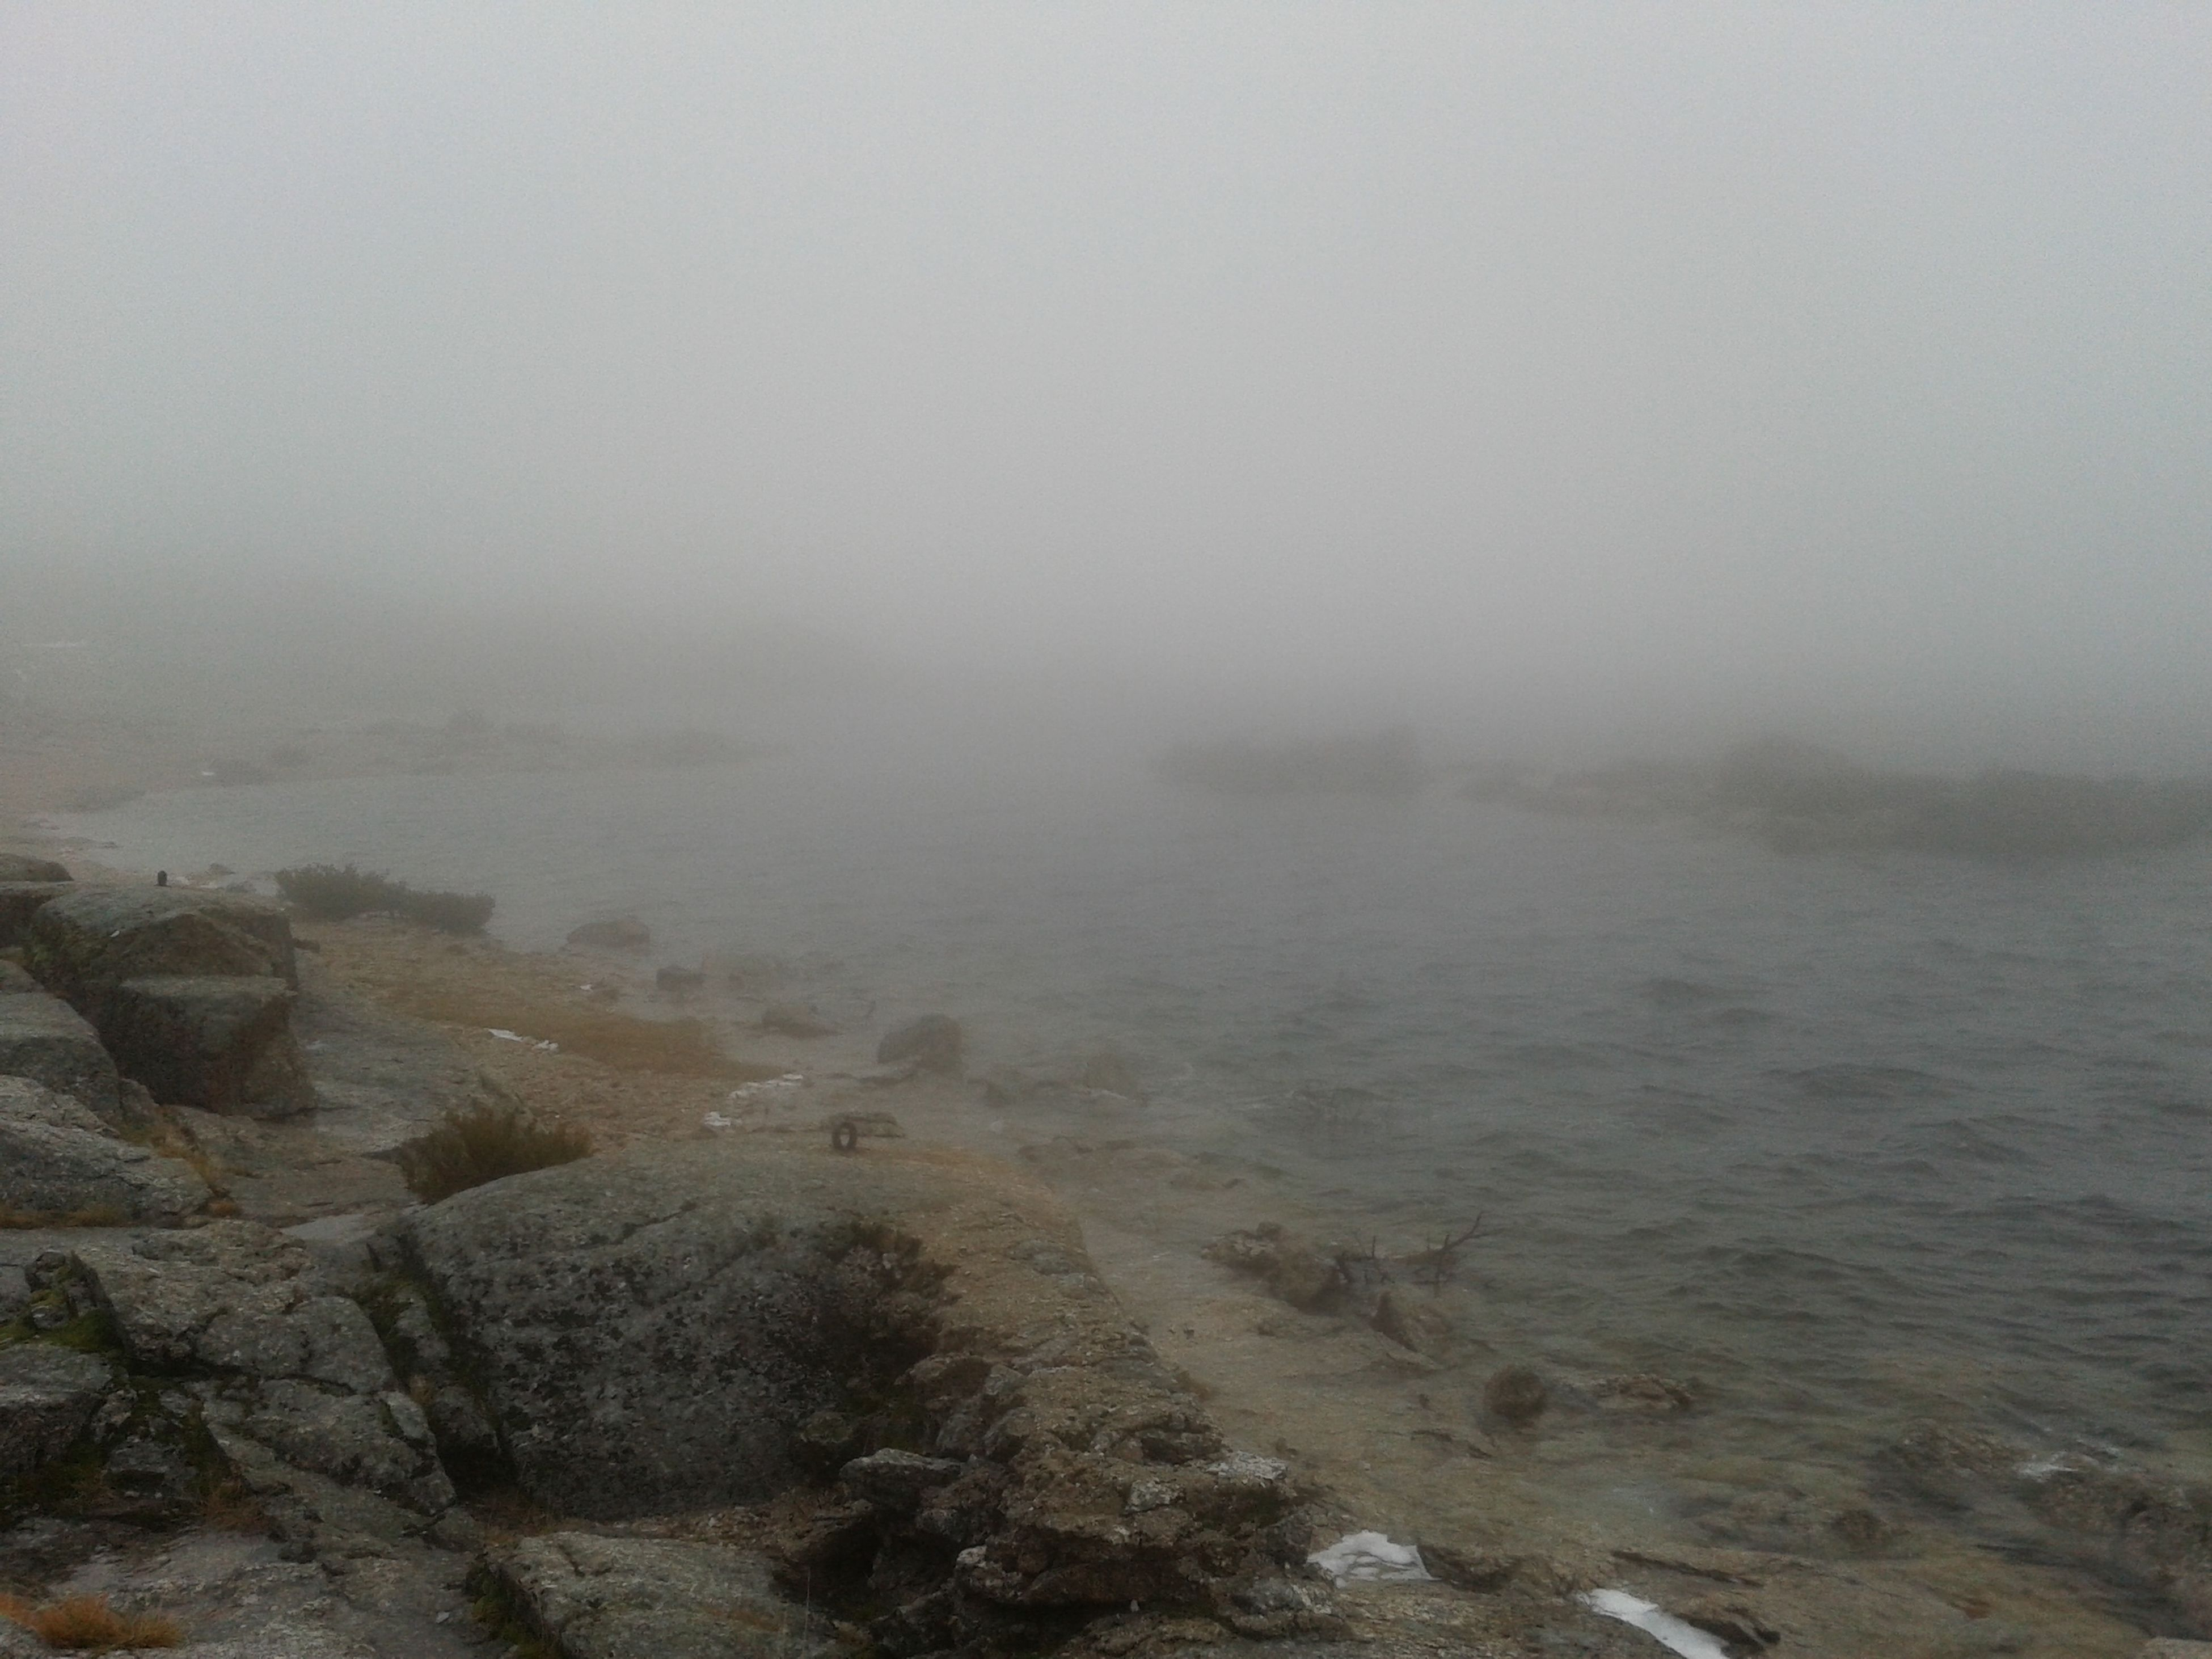 fog, foggy, weather, water, tranquility, tranquil scene, sky, scenics, nature, beauty in nature, copy space, overcast, landscape, day, outdoors, no people, non-urban scene, sea, idyllic